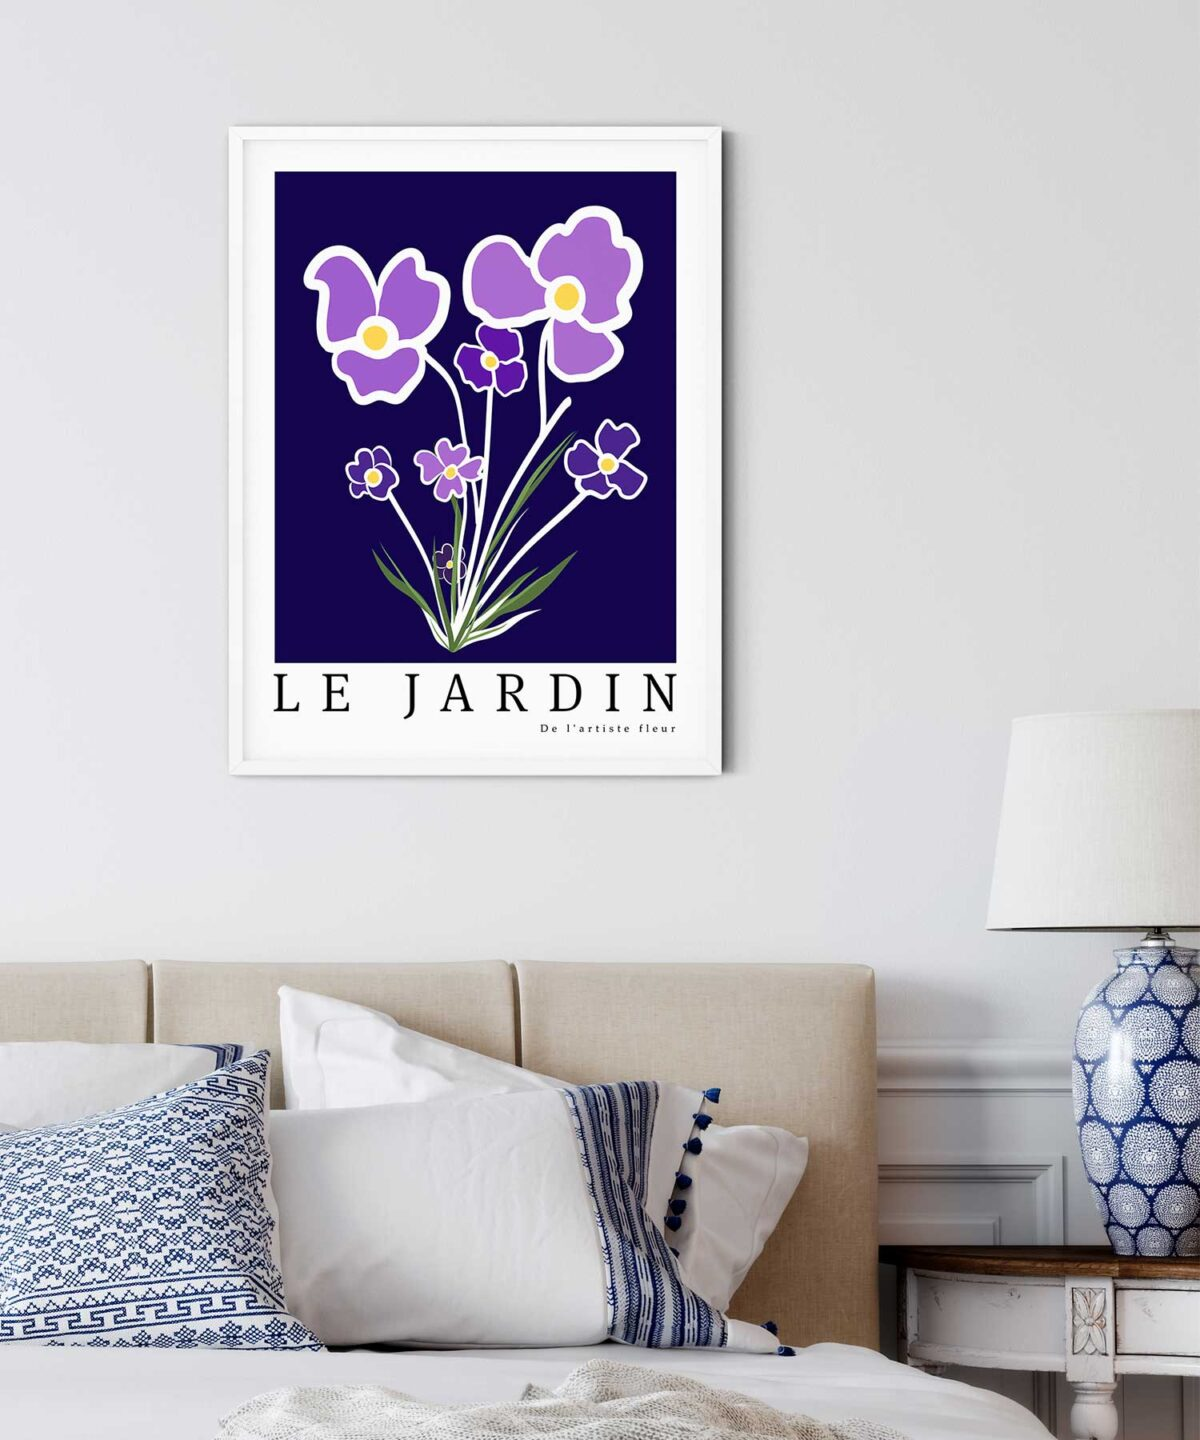 Purple-Flowers-on-Bedroom-Wall-White-Frame-Duwart